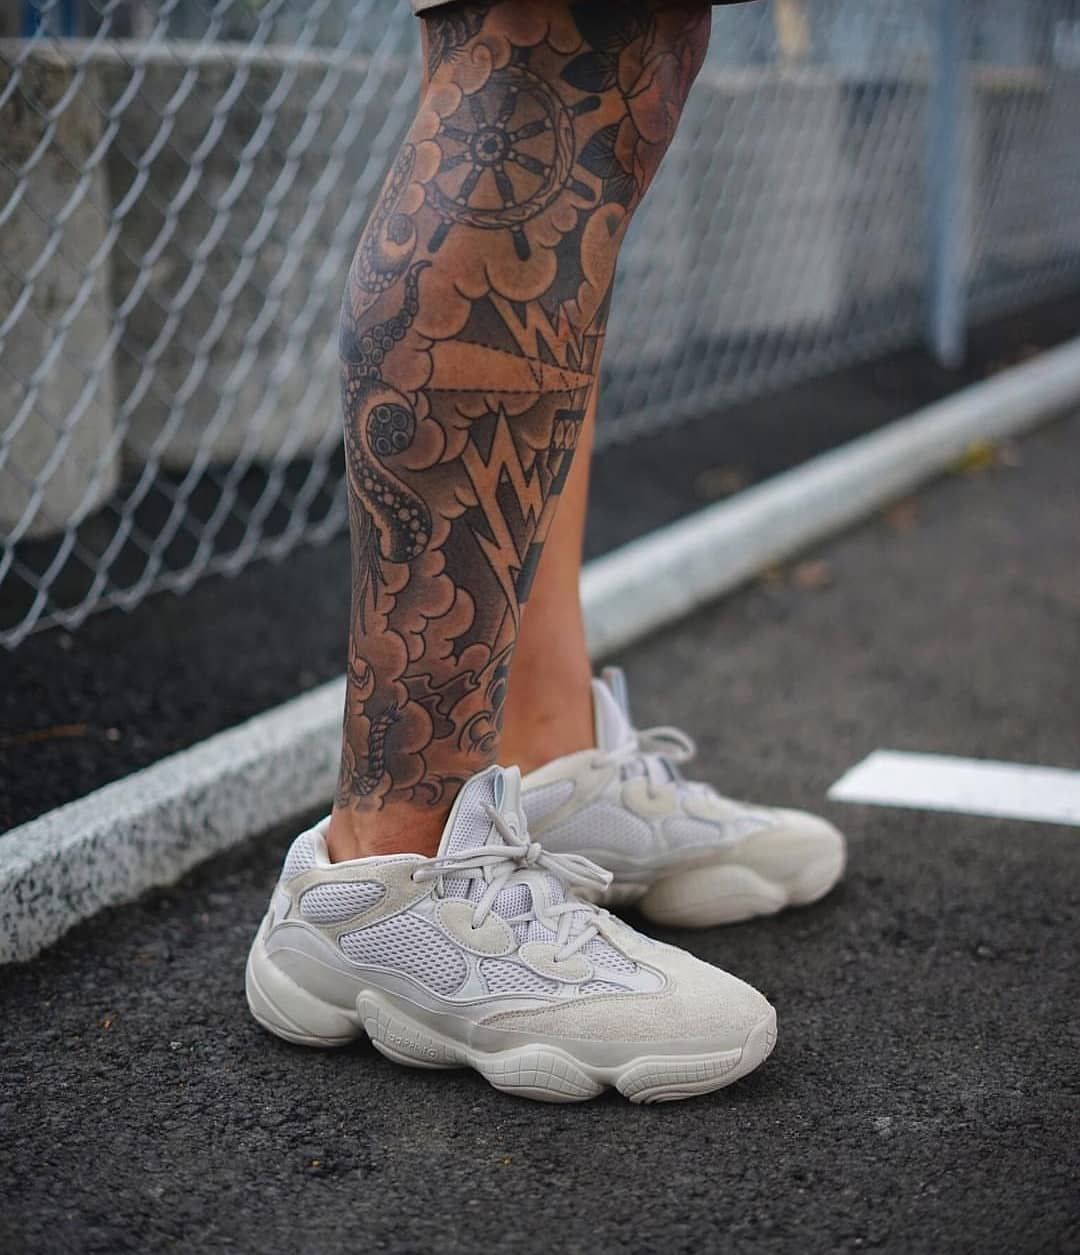 quality design 9a005 3683a   wh1tie  in our invisible socks and the Yeezy 500 desert rats! What do you  think about the bulky dad sneaker style   SNOCKS  socks  sneaker  adidas   yeezy ...